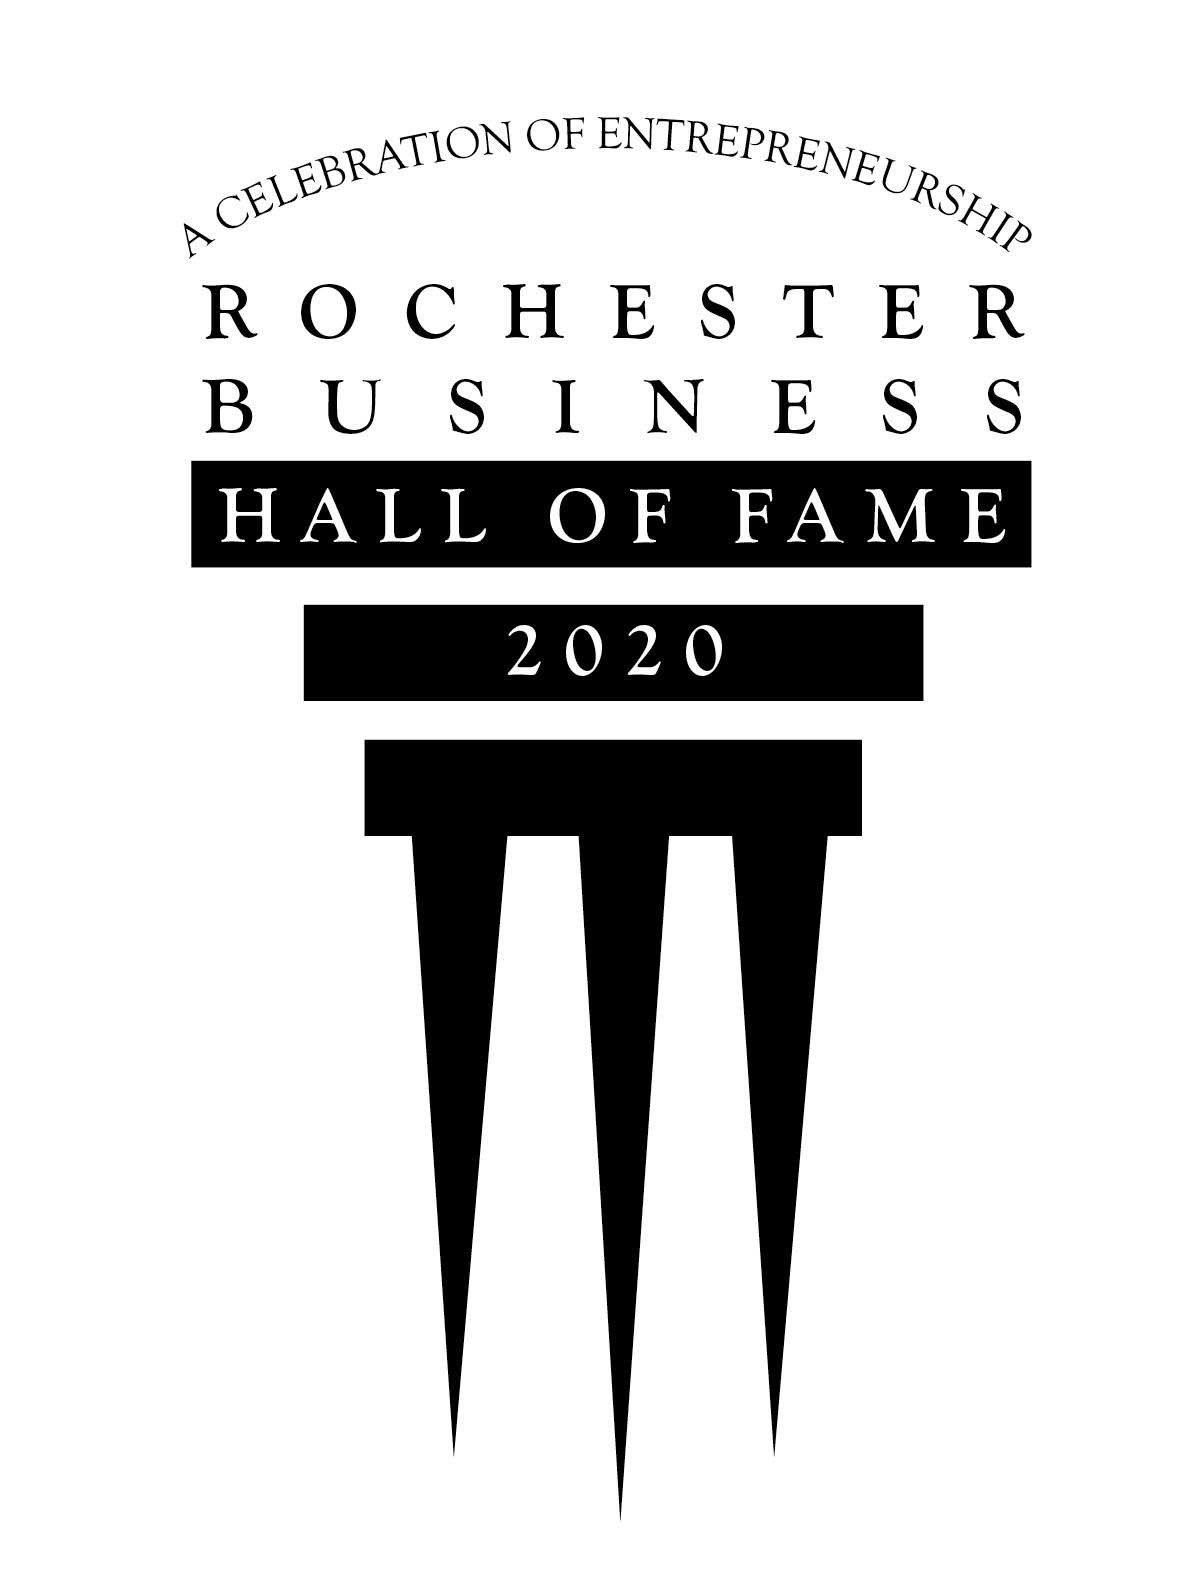 Virtual 2020 Rochester Business Hall of Fame